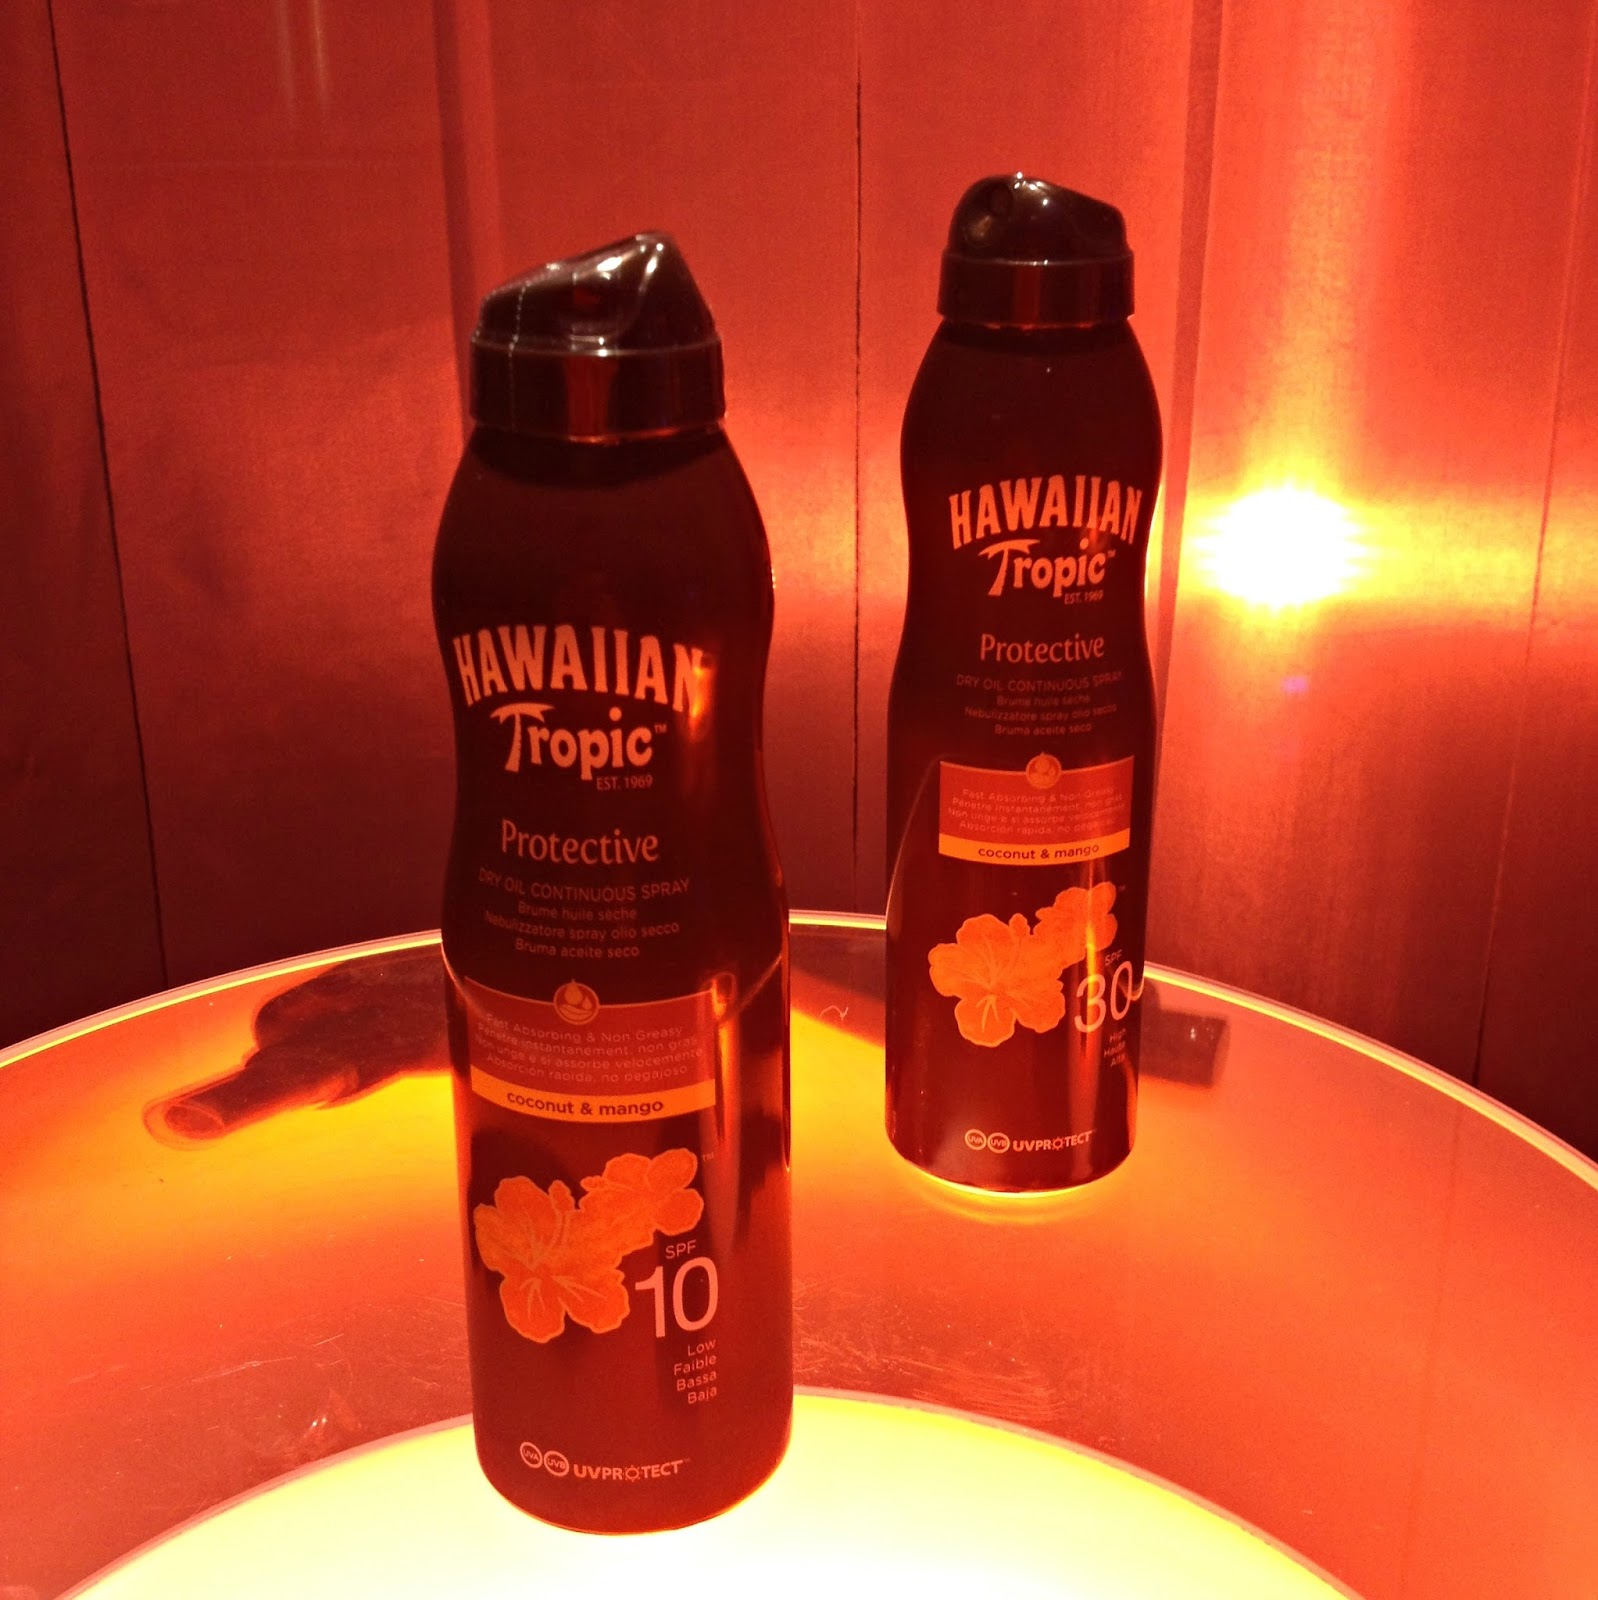 Hawaiian Tropic novità estate 2015